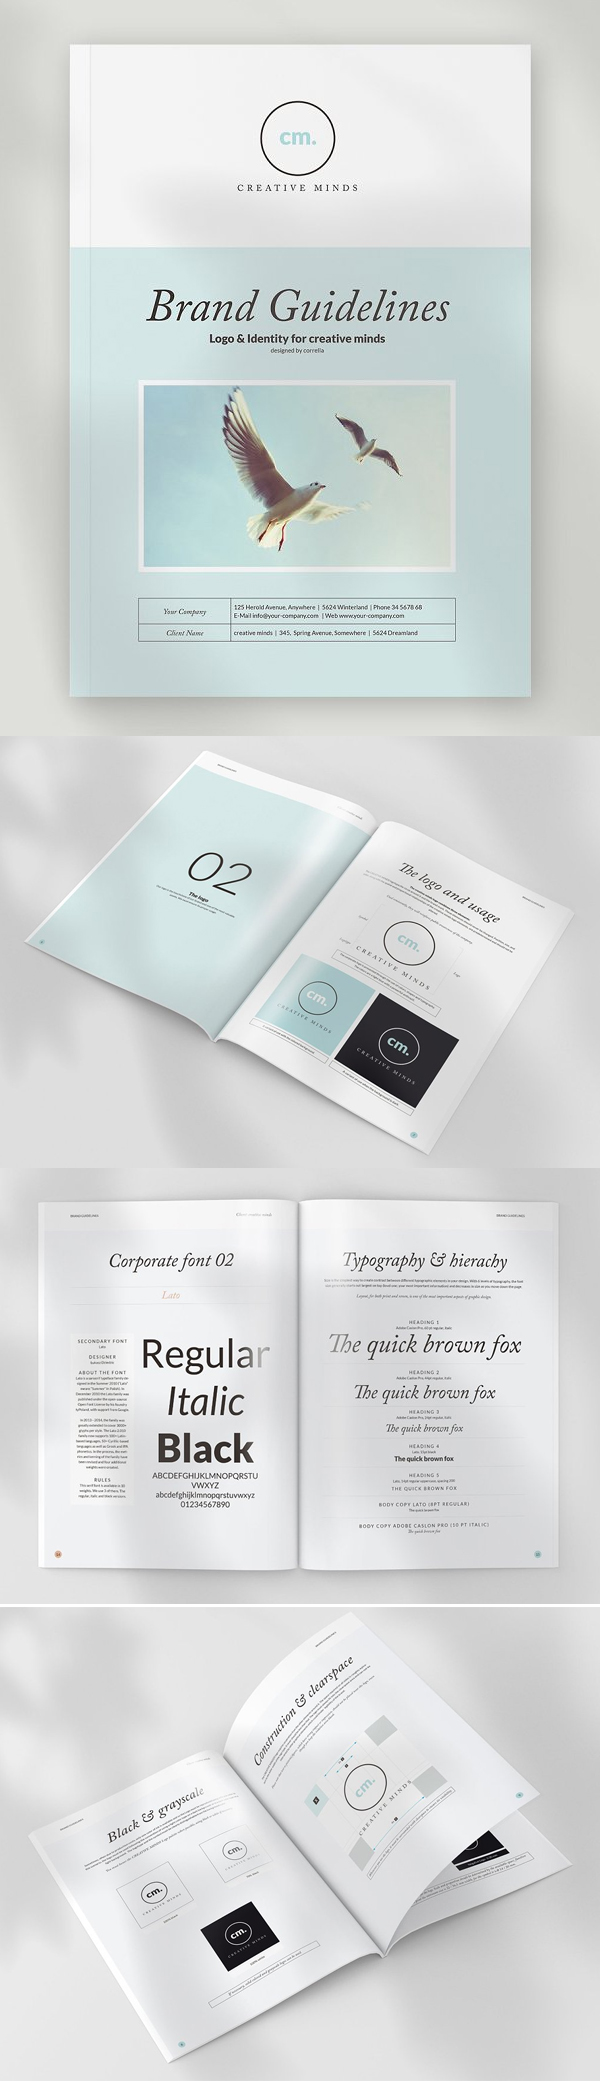 Brand and Design Guidelines InDesign Brochure Template